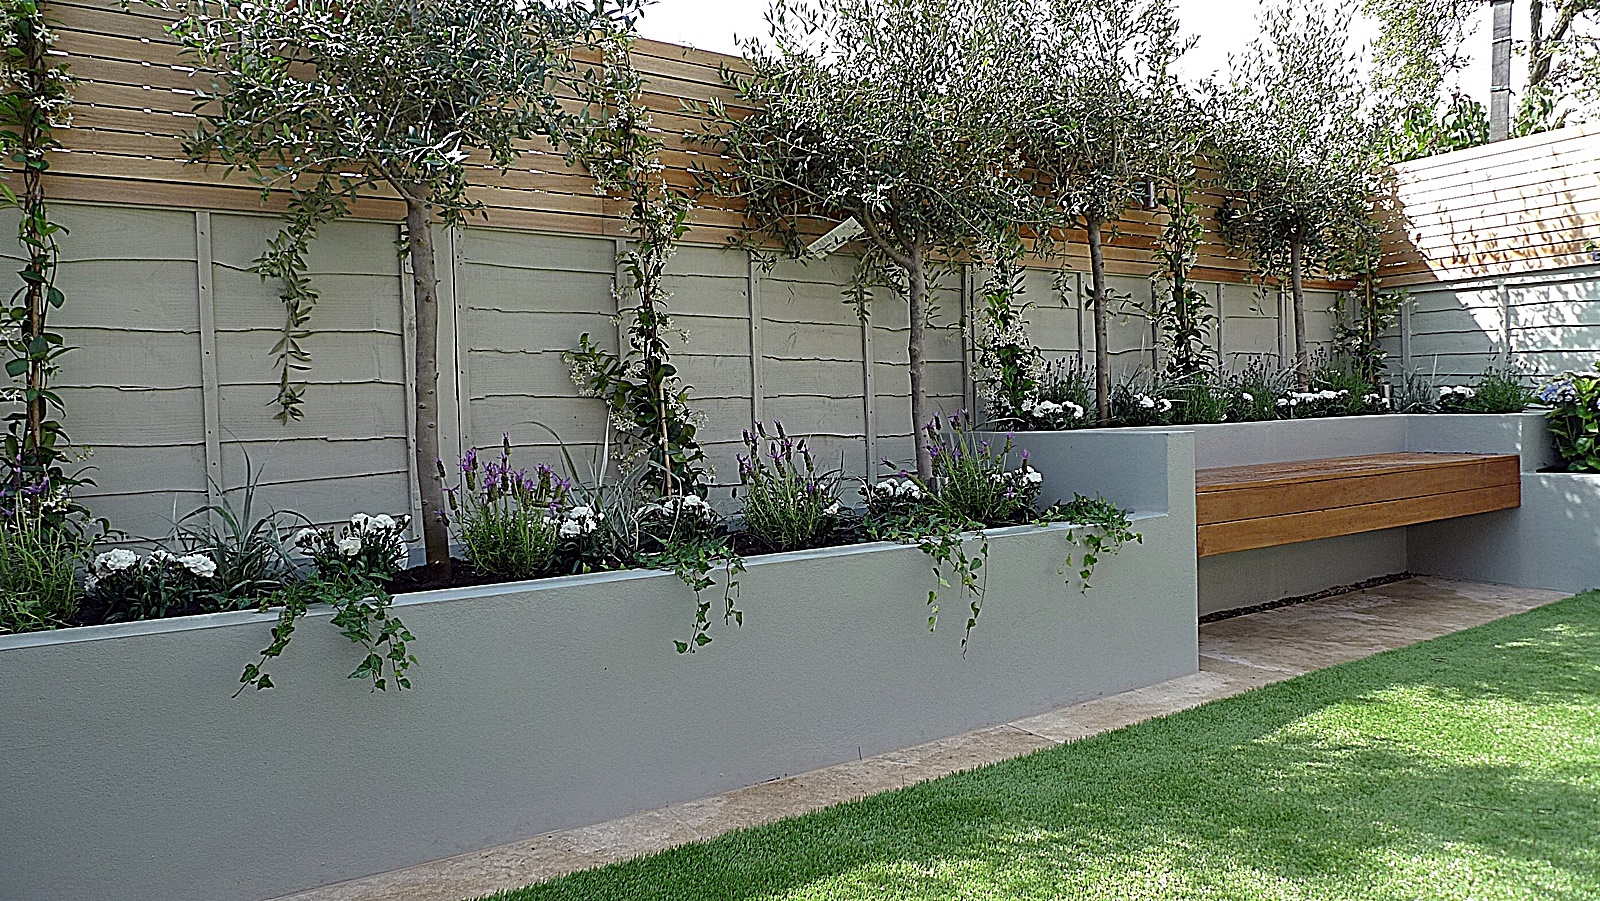 Grass archives london garden blog Garden wall color ideas